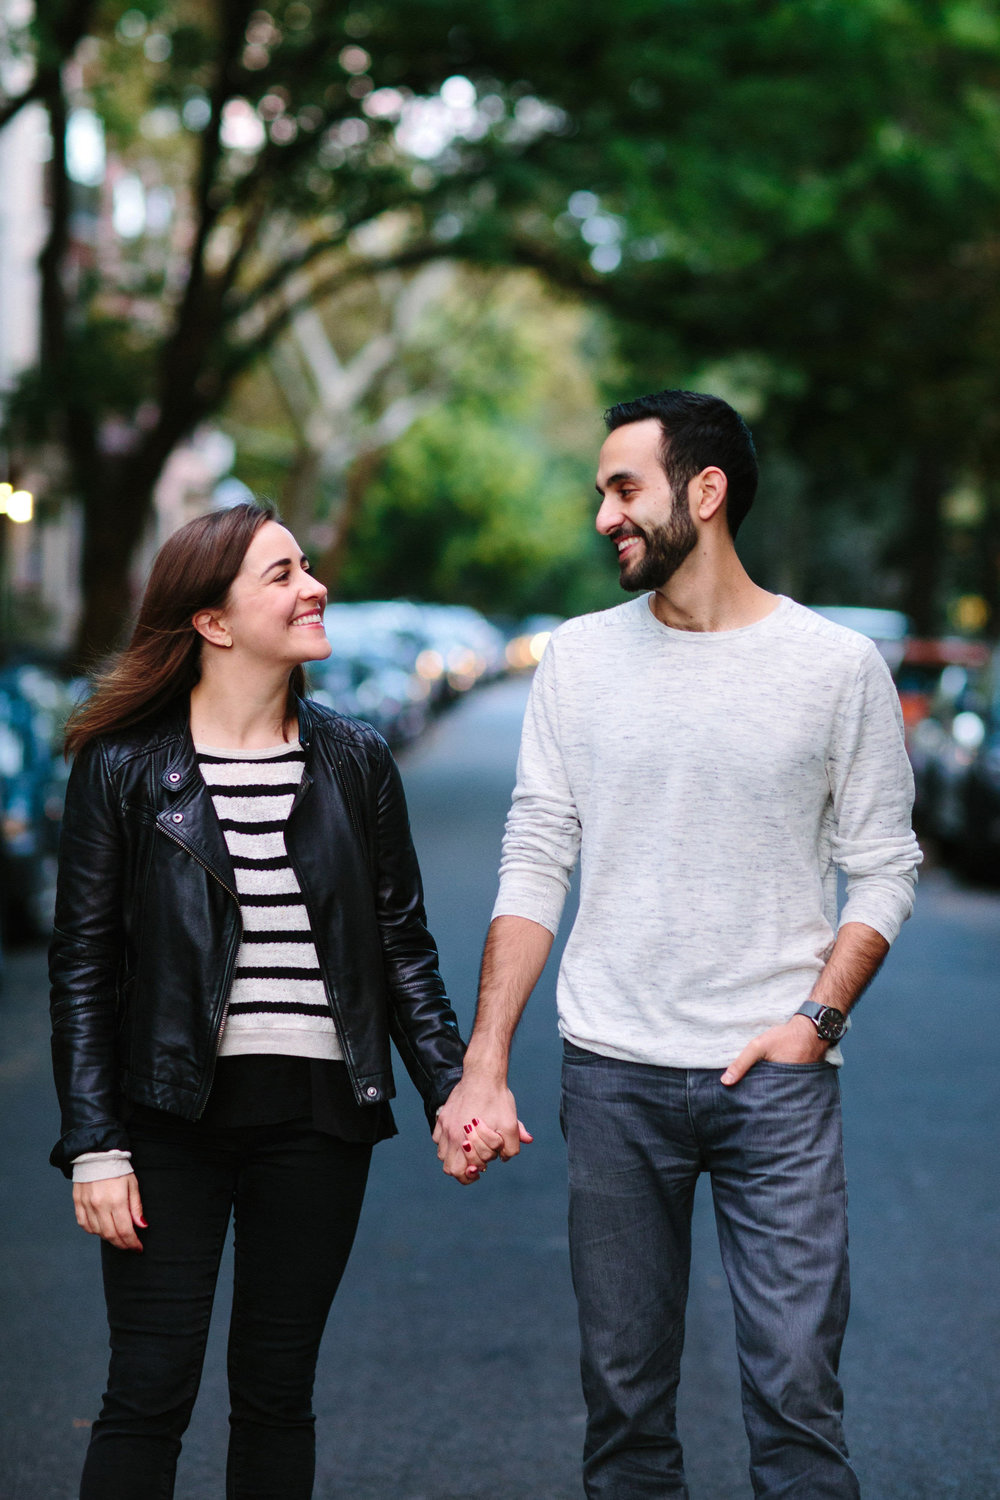 prospect_park_engagement_session_09.jpg